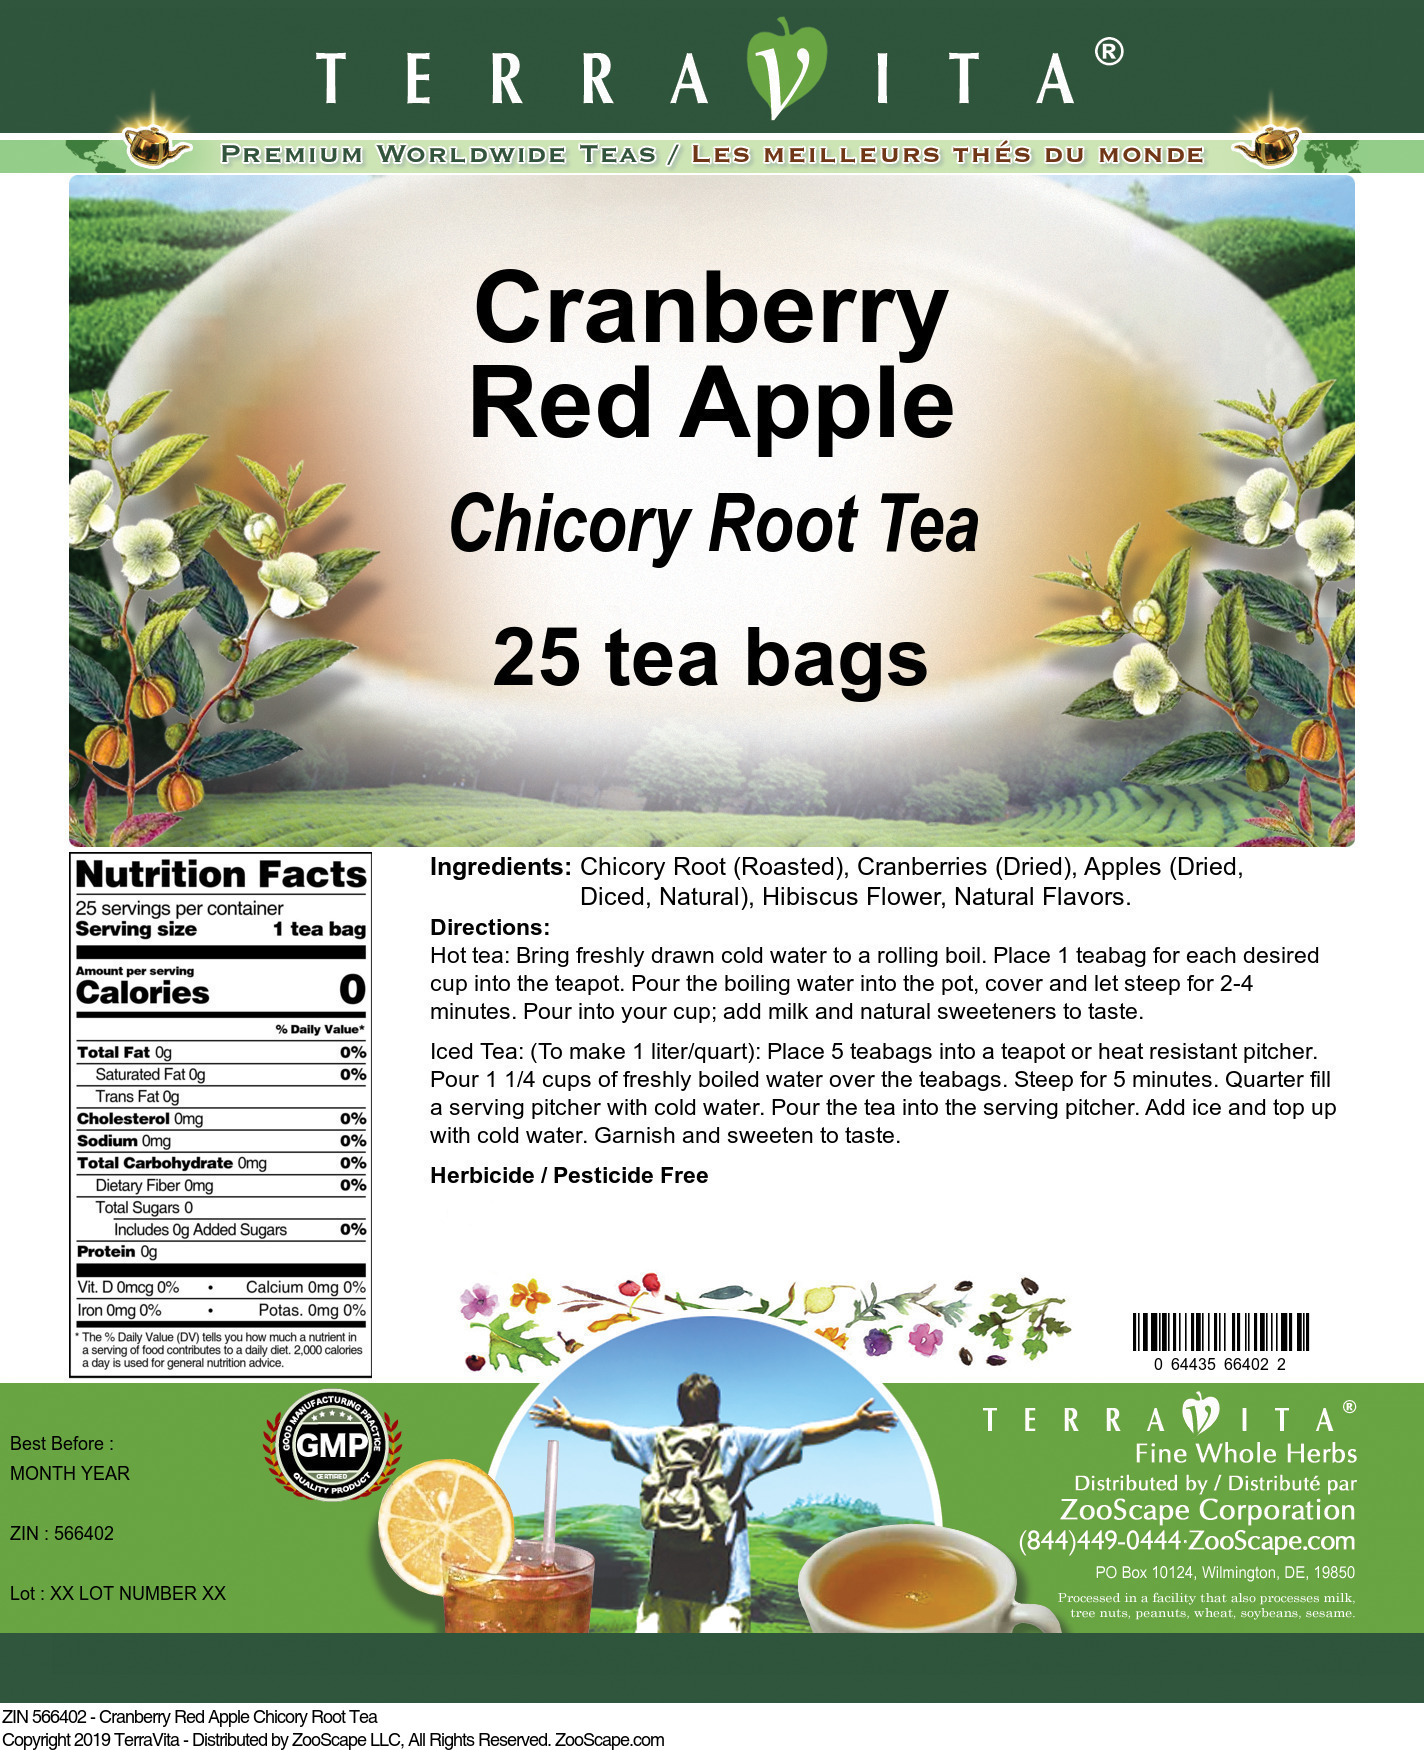 Cranberry Red Apple Chicory Root